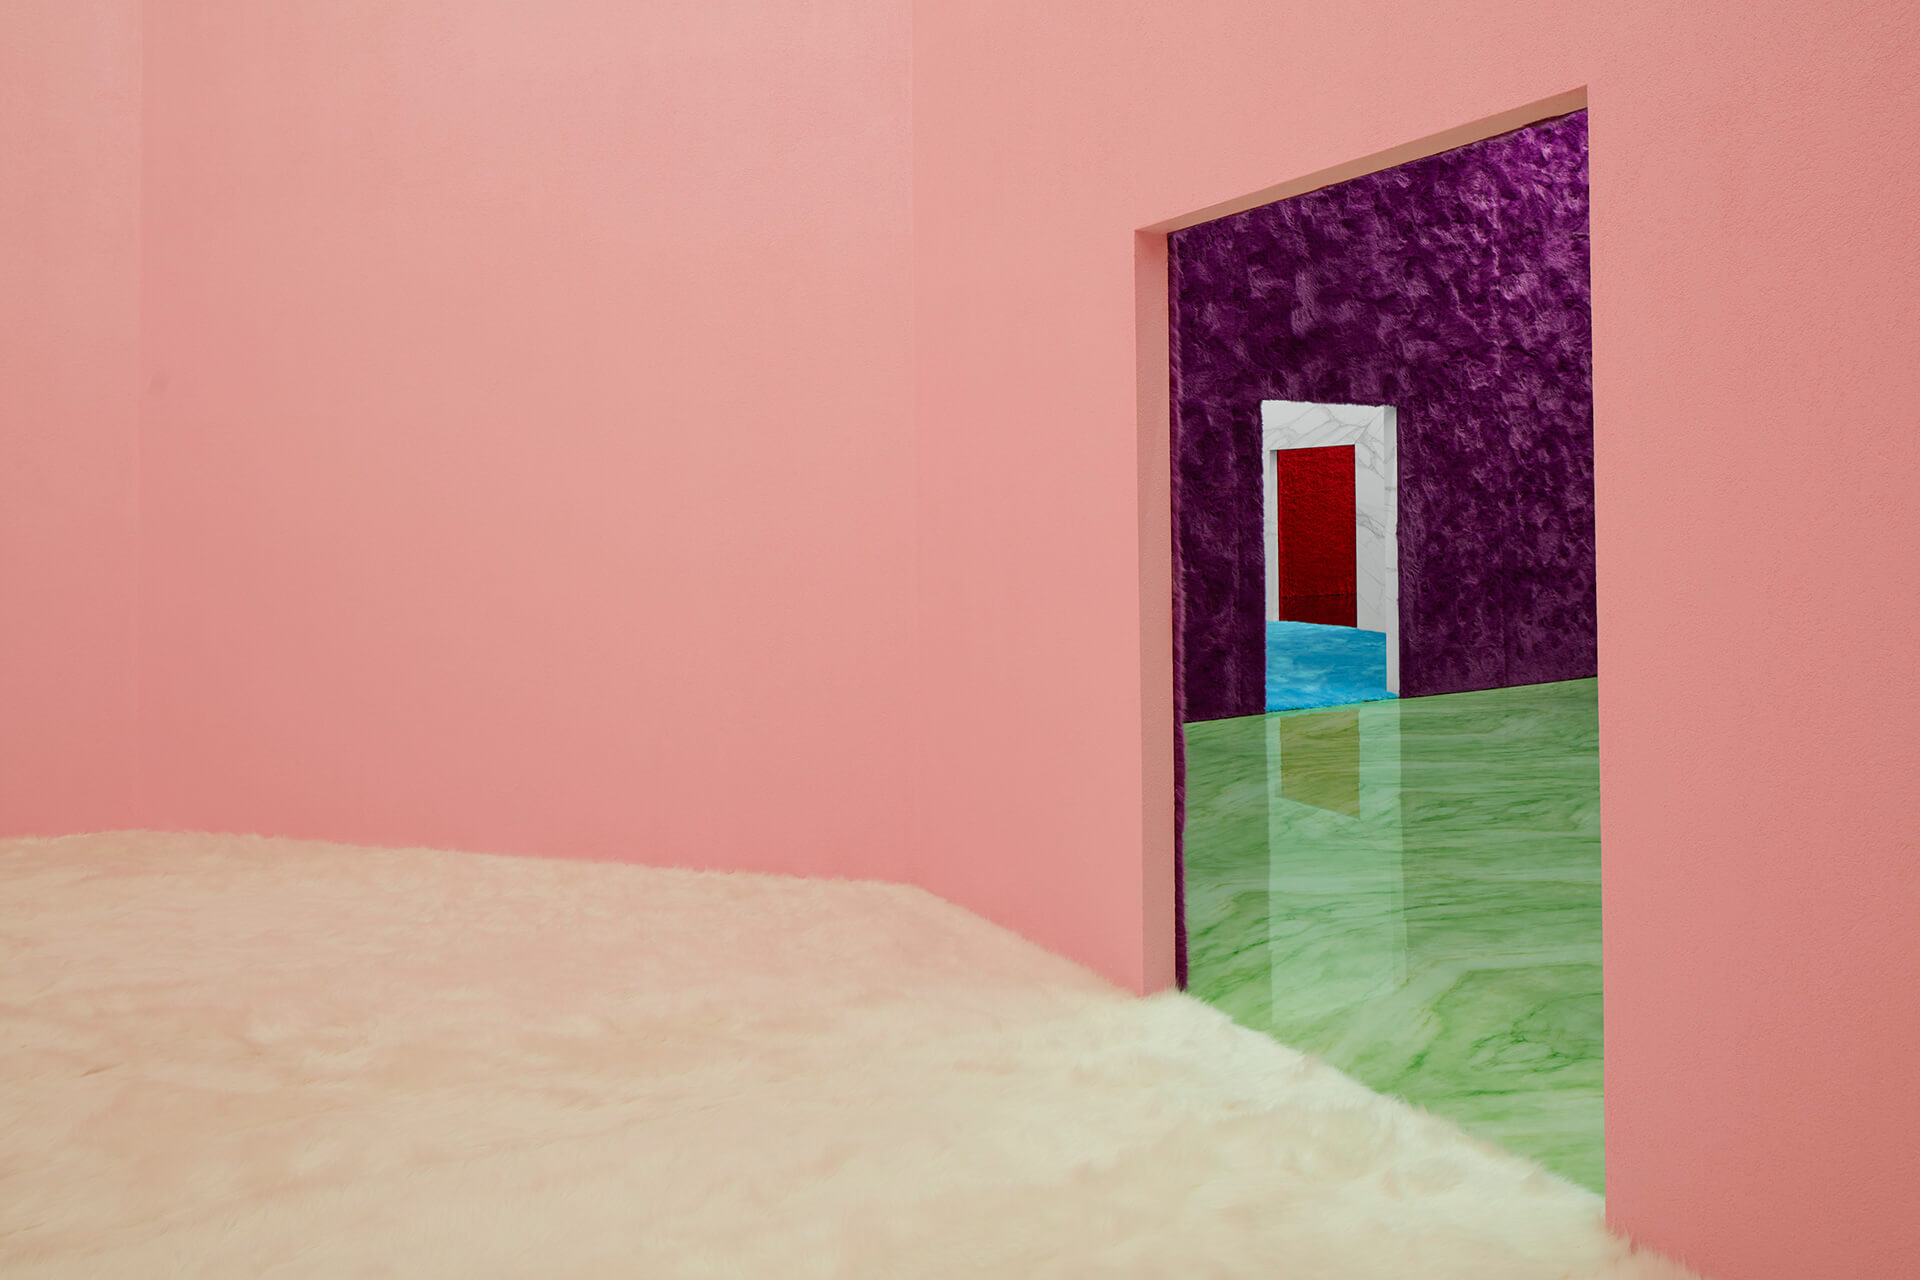 Dark magenta faux fur-clad walls and a muted green marble floor unveils the third room | Possible Feelings | Prada x Rem Koolhaas | STIRworld